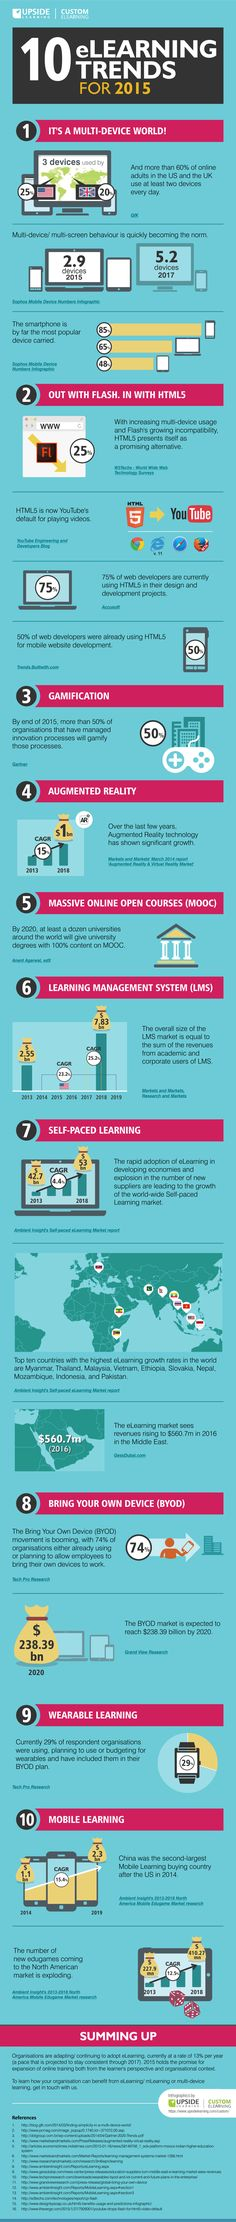 Get an up-close look into the most impactful eLearning trends for 2015.